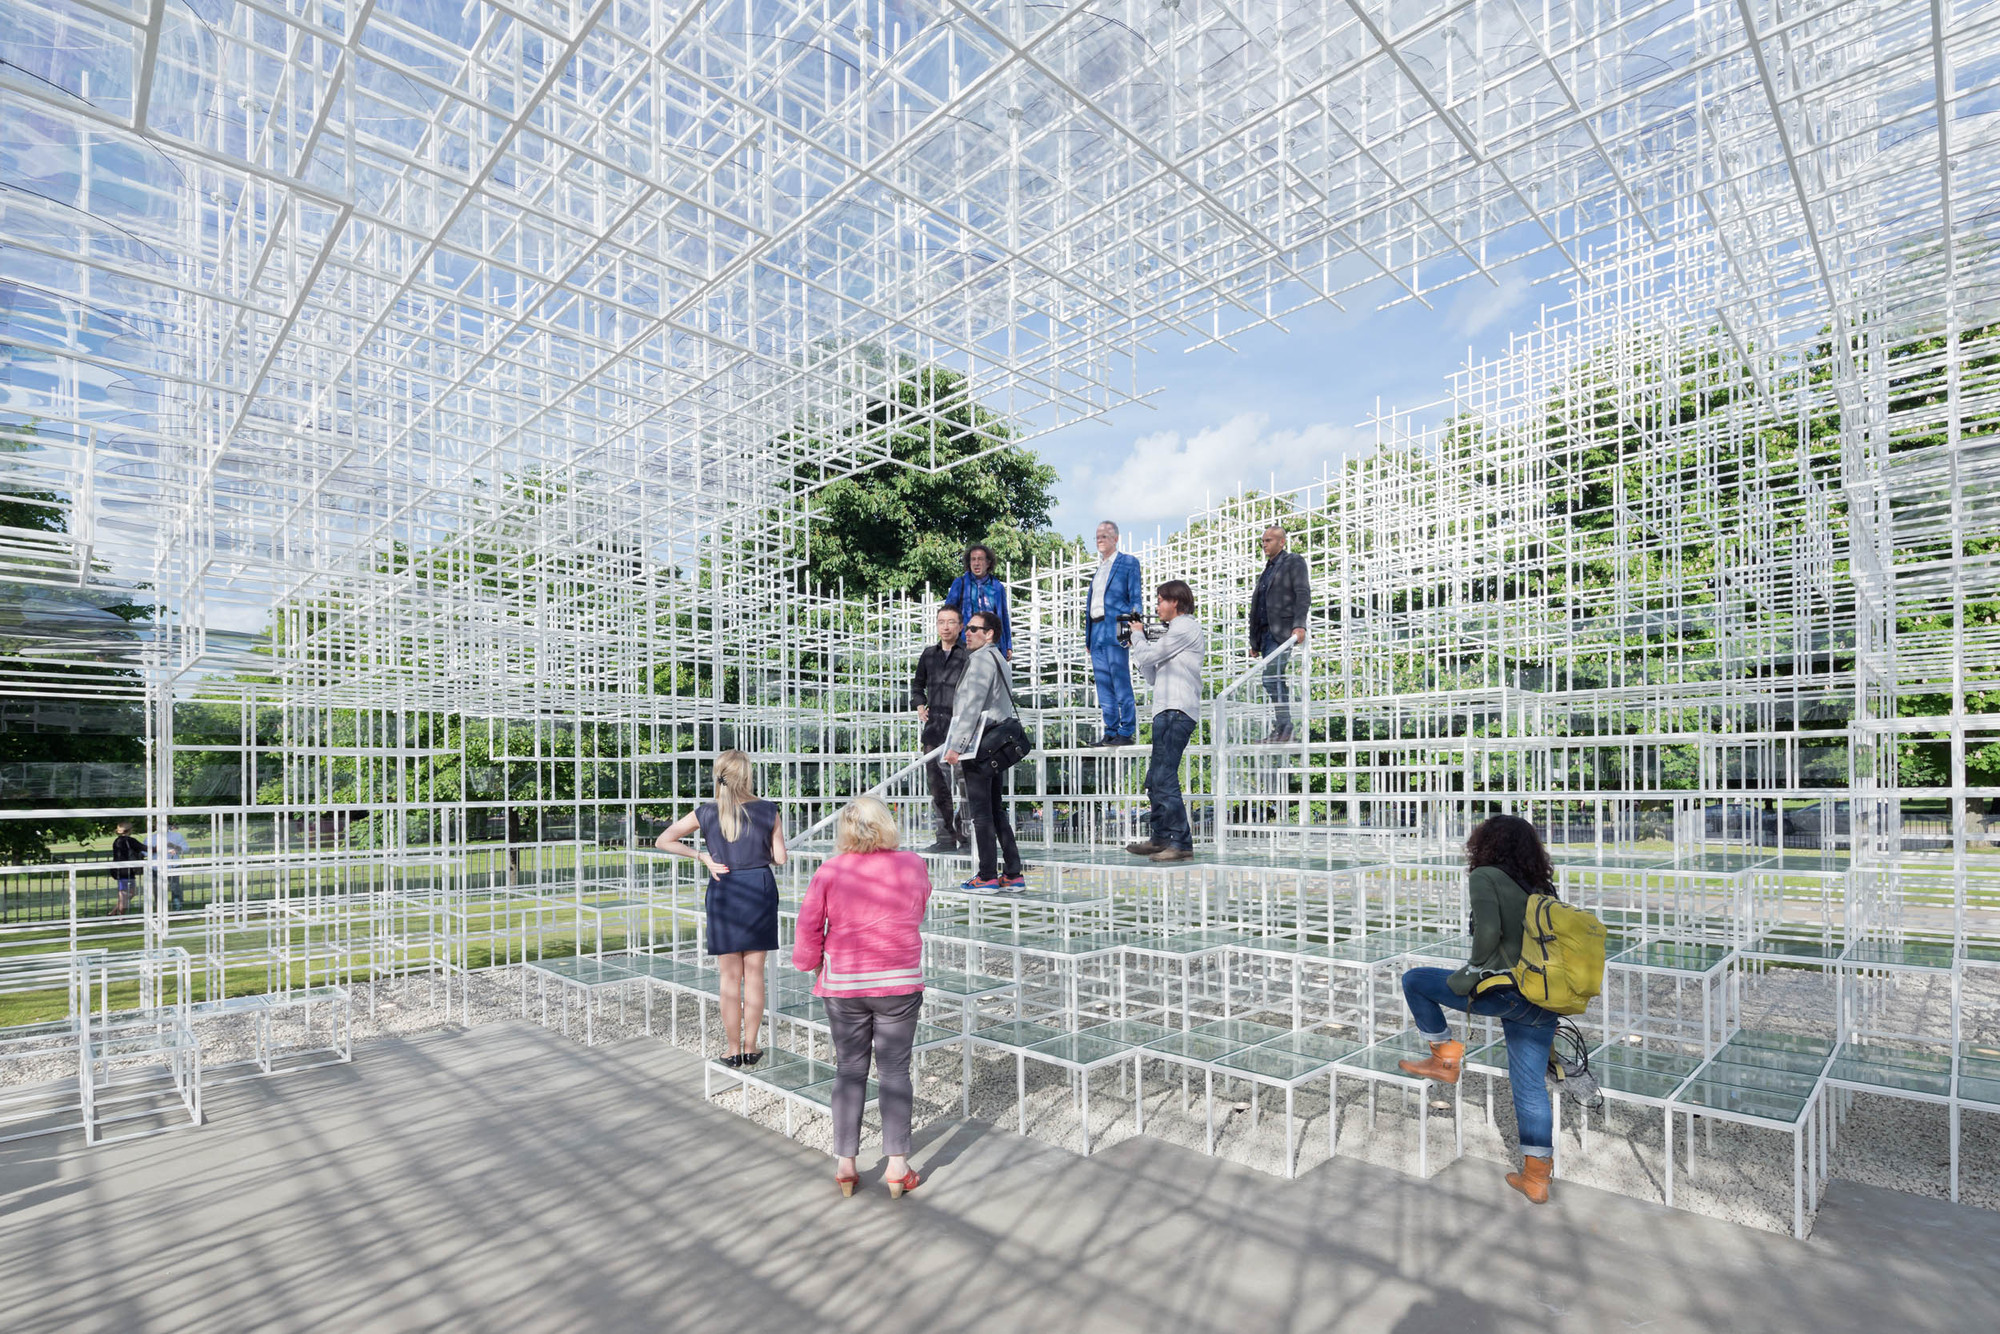 From Tokyo to Milwaukee: Sou Fujimoto and His Impact on Students at the University of Wisconsin, 2013 Serpentine Gallery Pavilion / Sou Fujimoto. Image © Iwan Baan